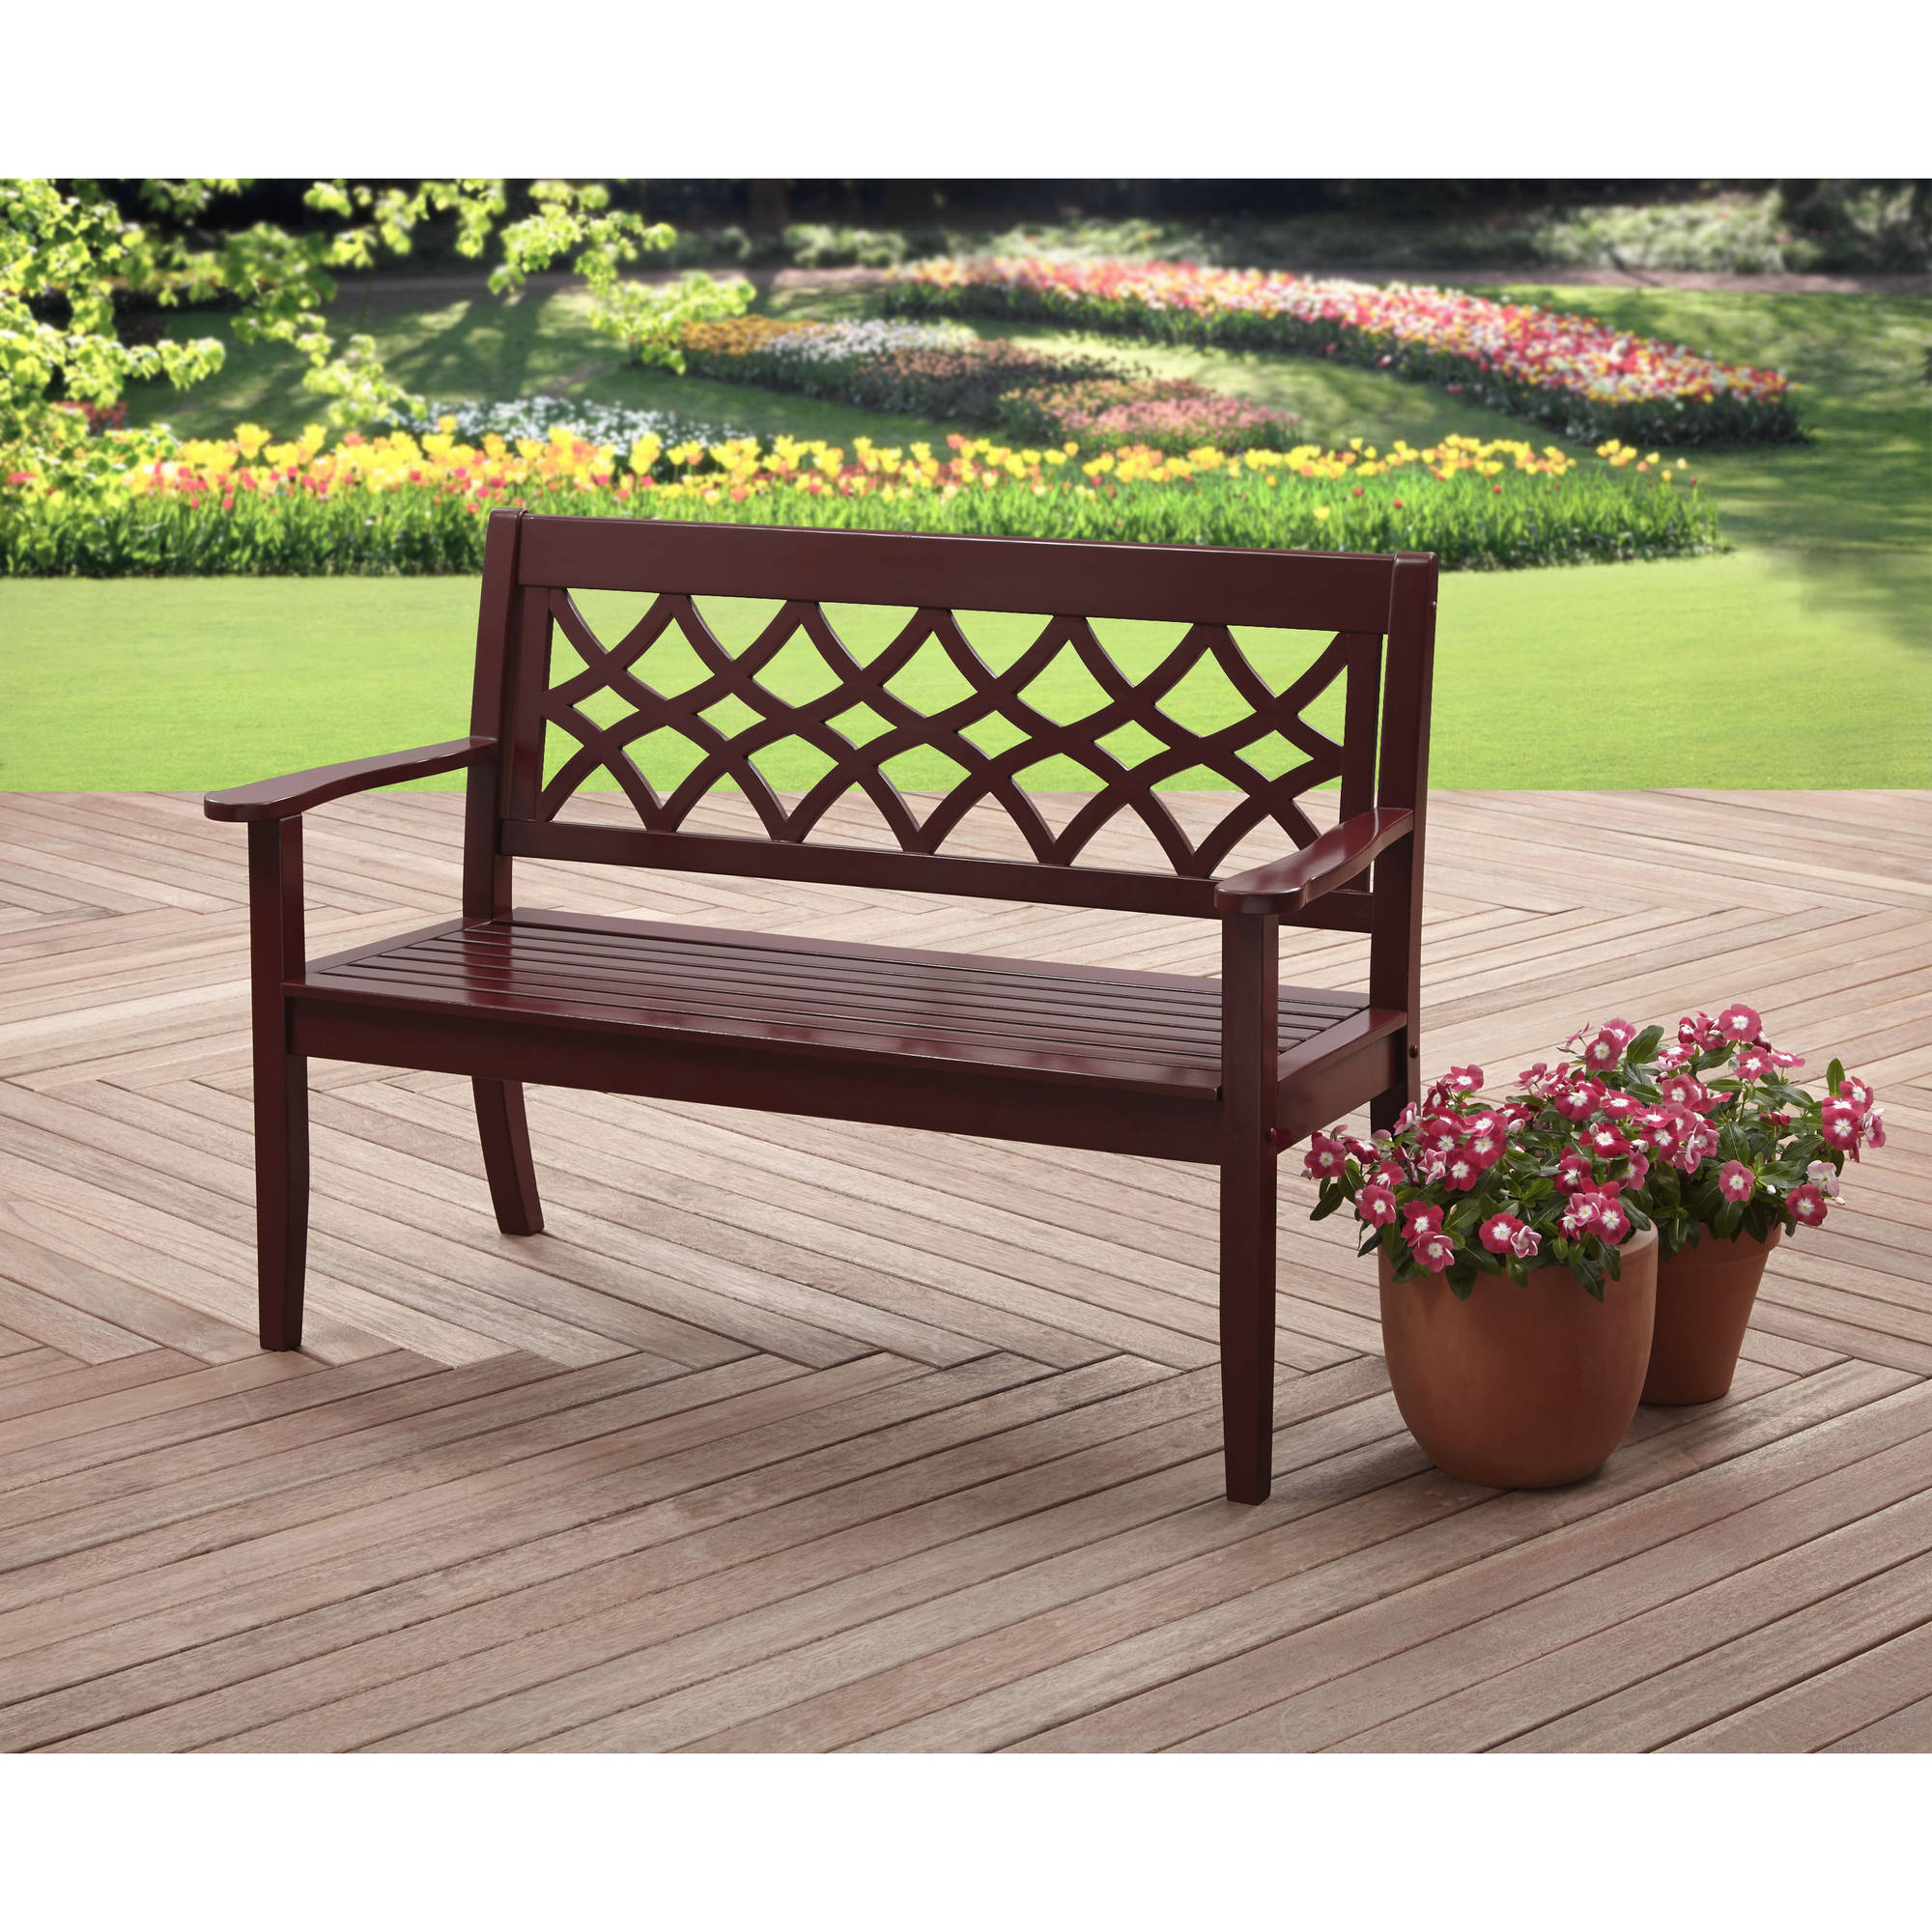 Better Homes and Gardens 4' Bench, Dark Red